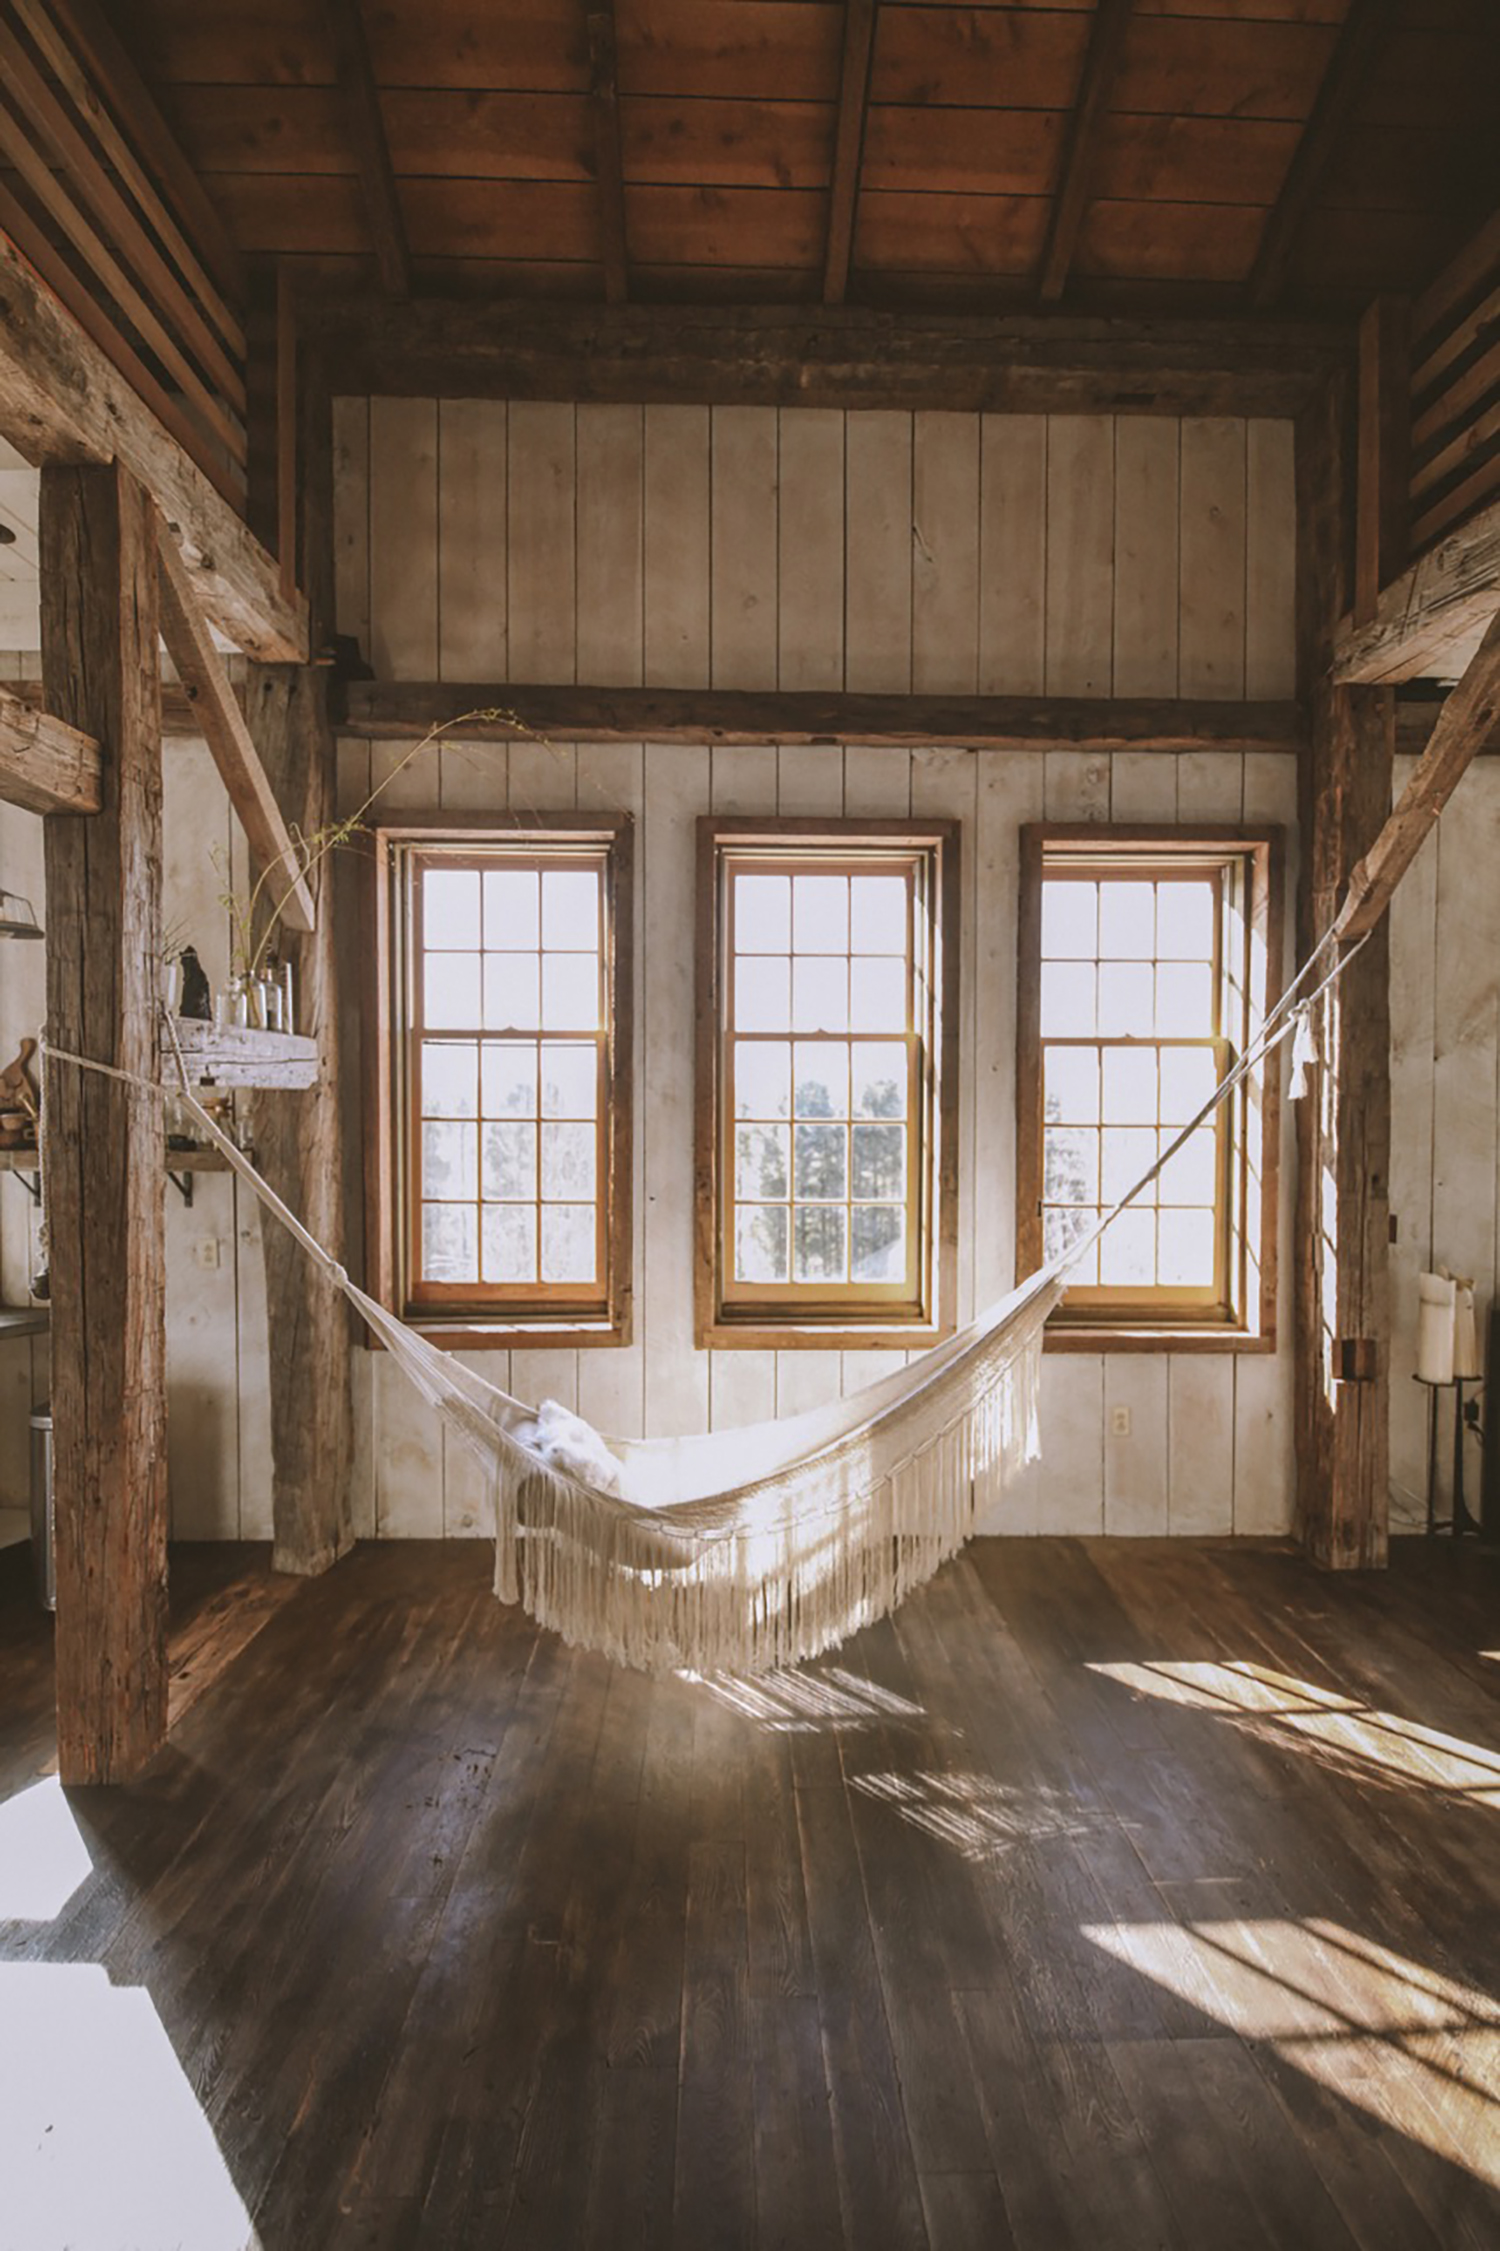 Hammock in Hemlock Hill Barn, Callicoon, New York